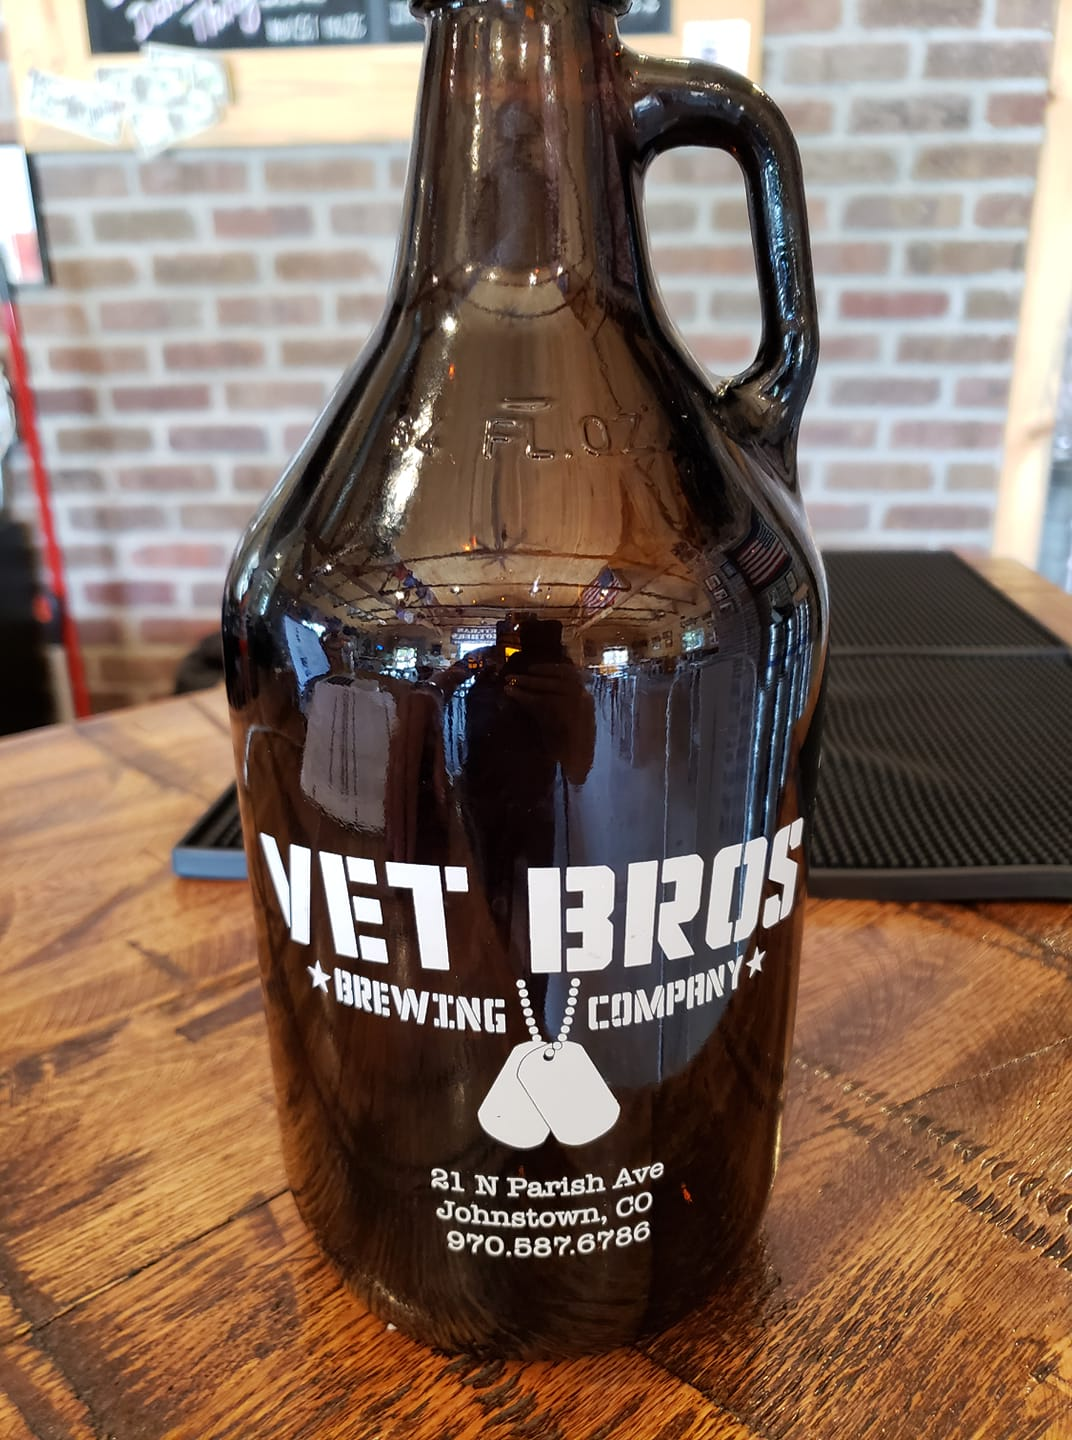 Veteran Brothers Brewing Co.